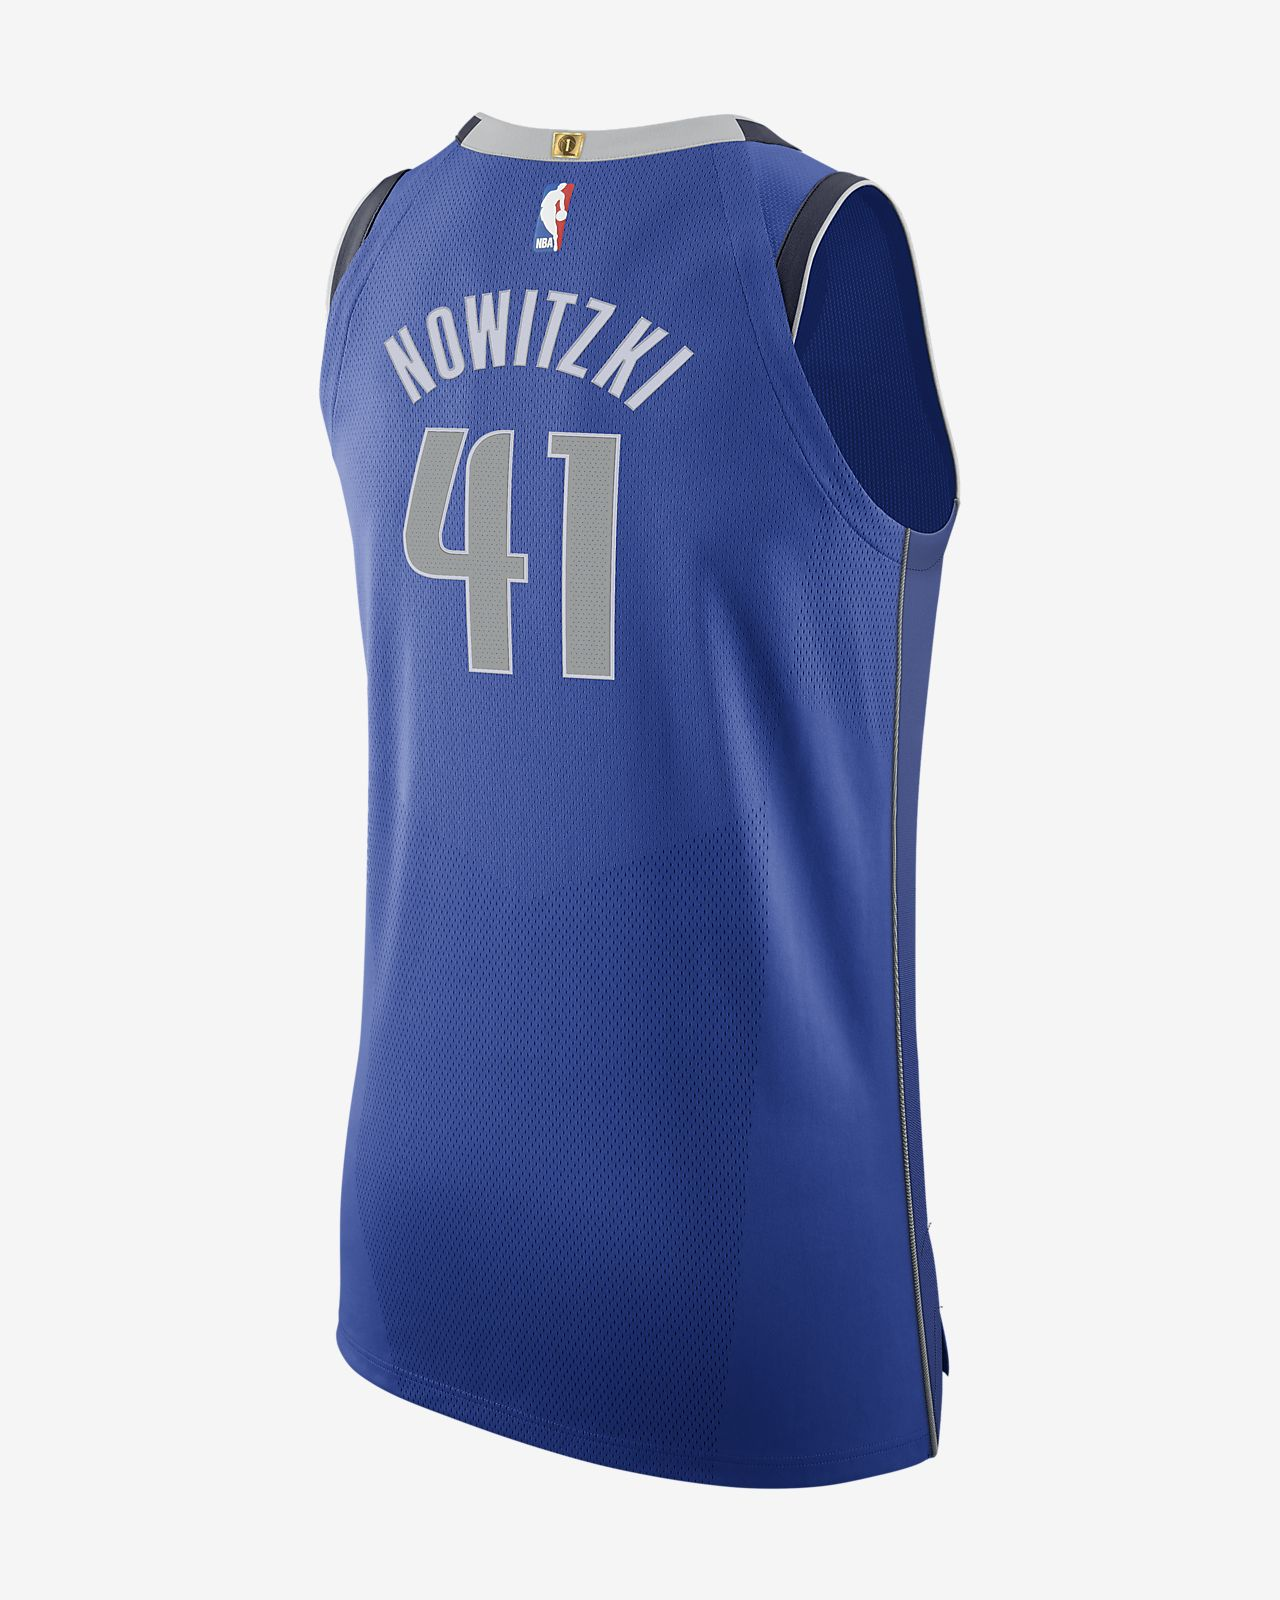 15af24b4 Men's Nike NBA Connected Jersey. Dirk Nowitzki Icon Edition Authentic (Dallas  Mavericks)